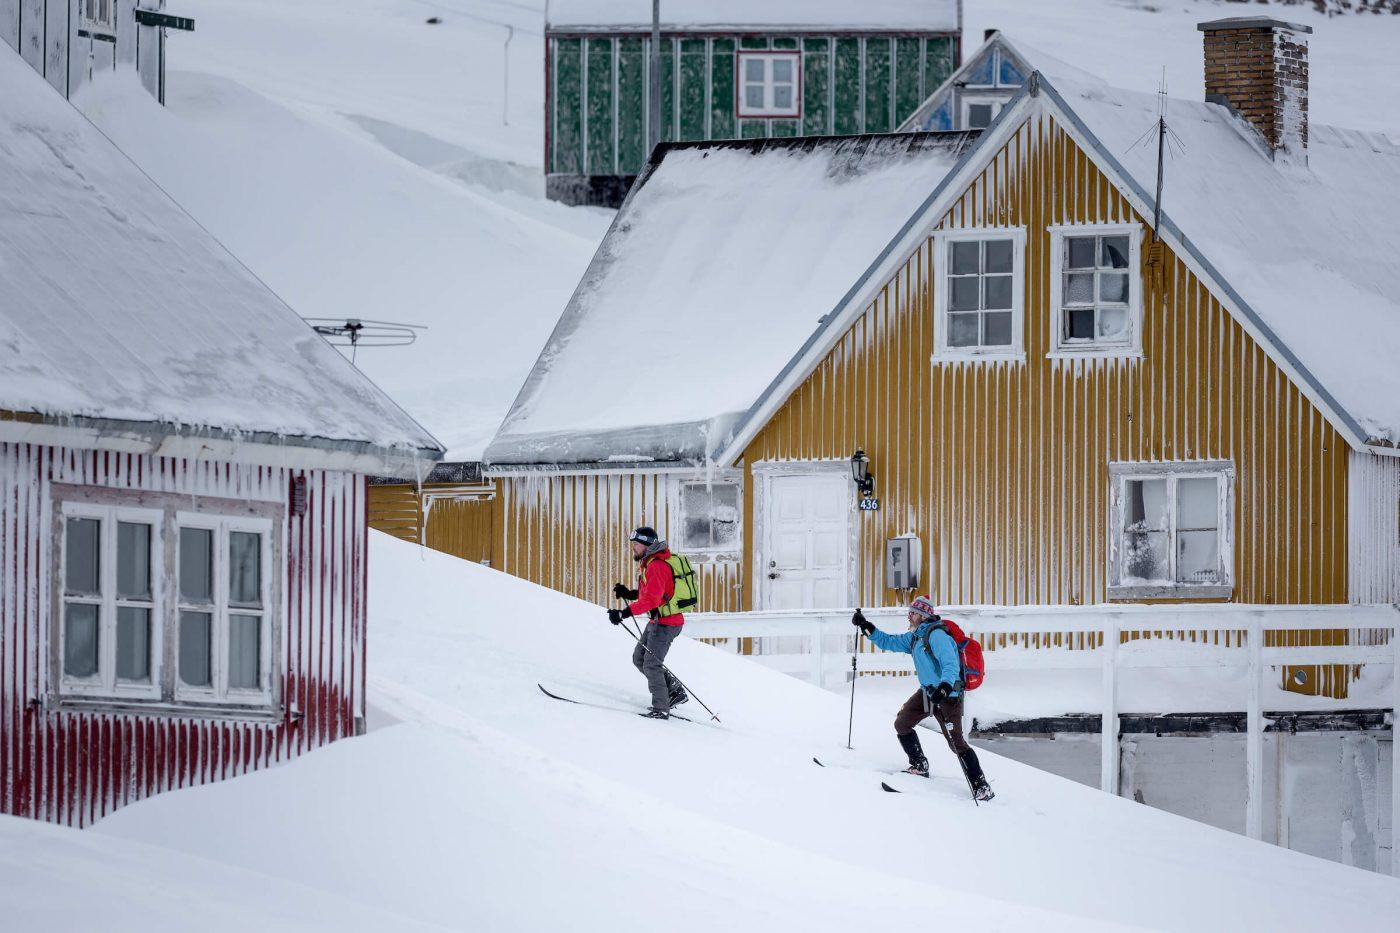 Two cross country skiers ascending between houses in Tasiilaq in East Greenland